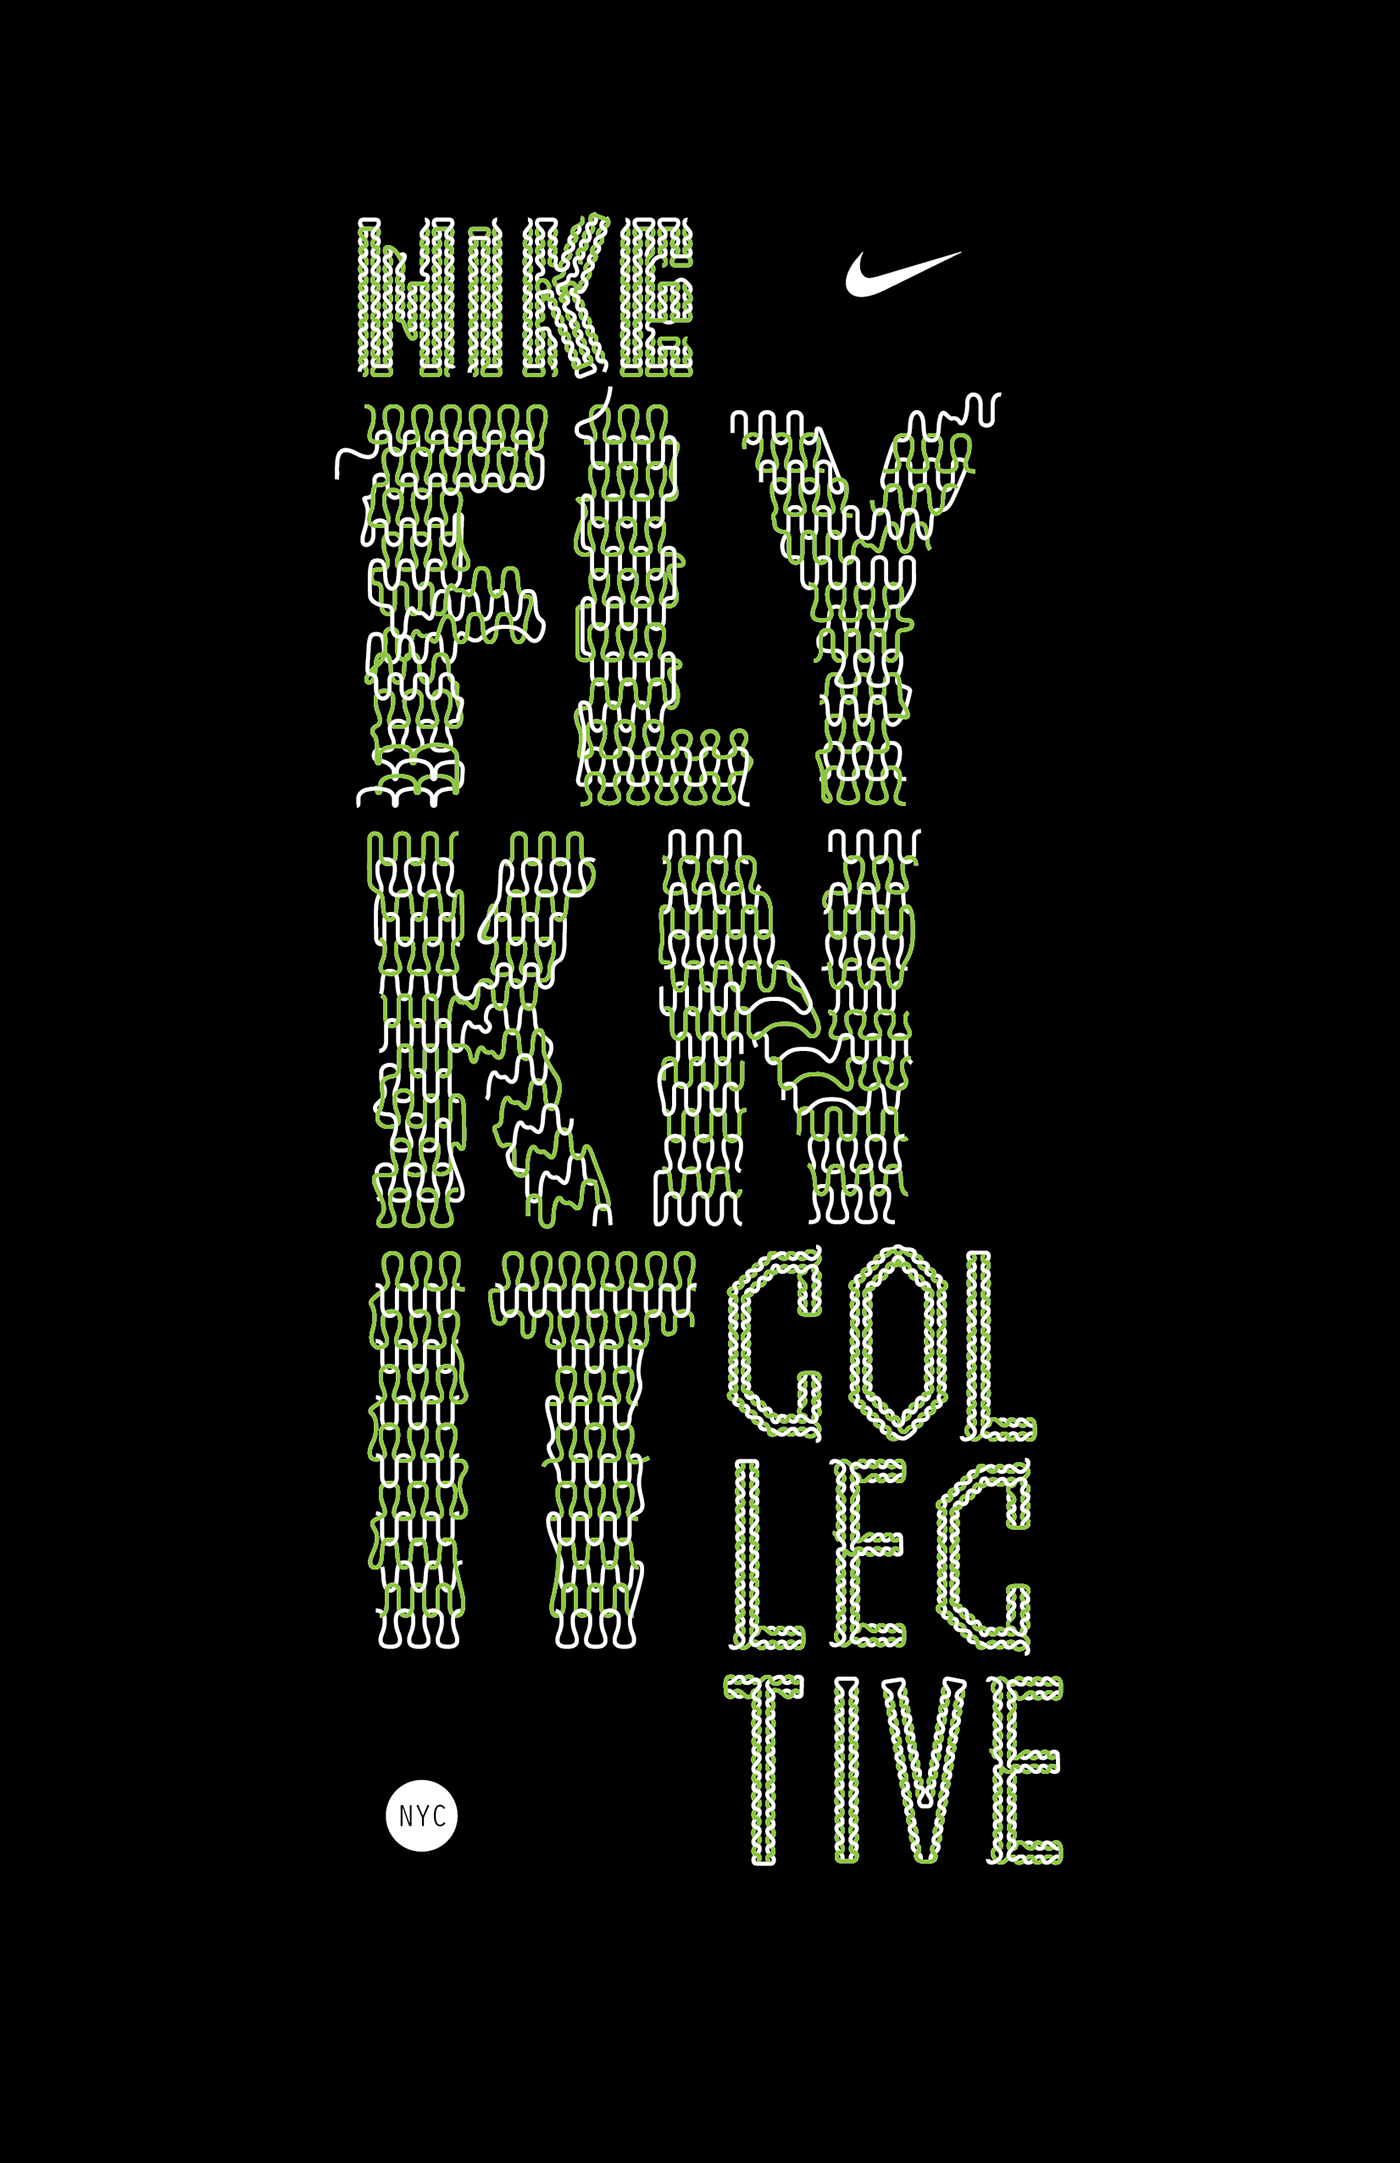 Nike Flyknit Collective T Shirt 3 On Behance